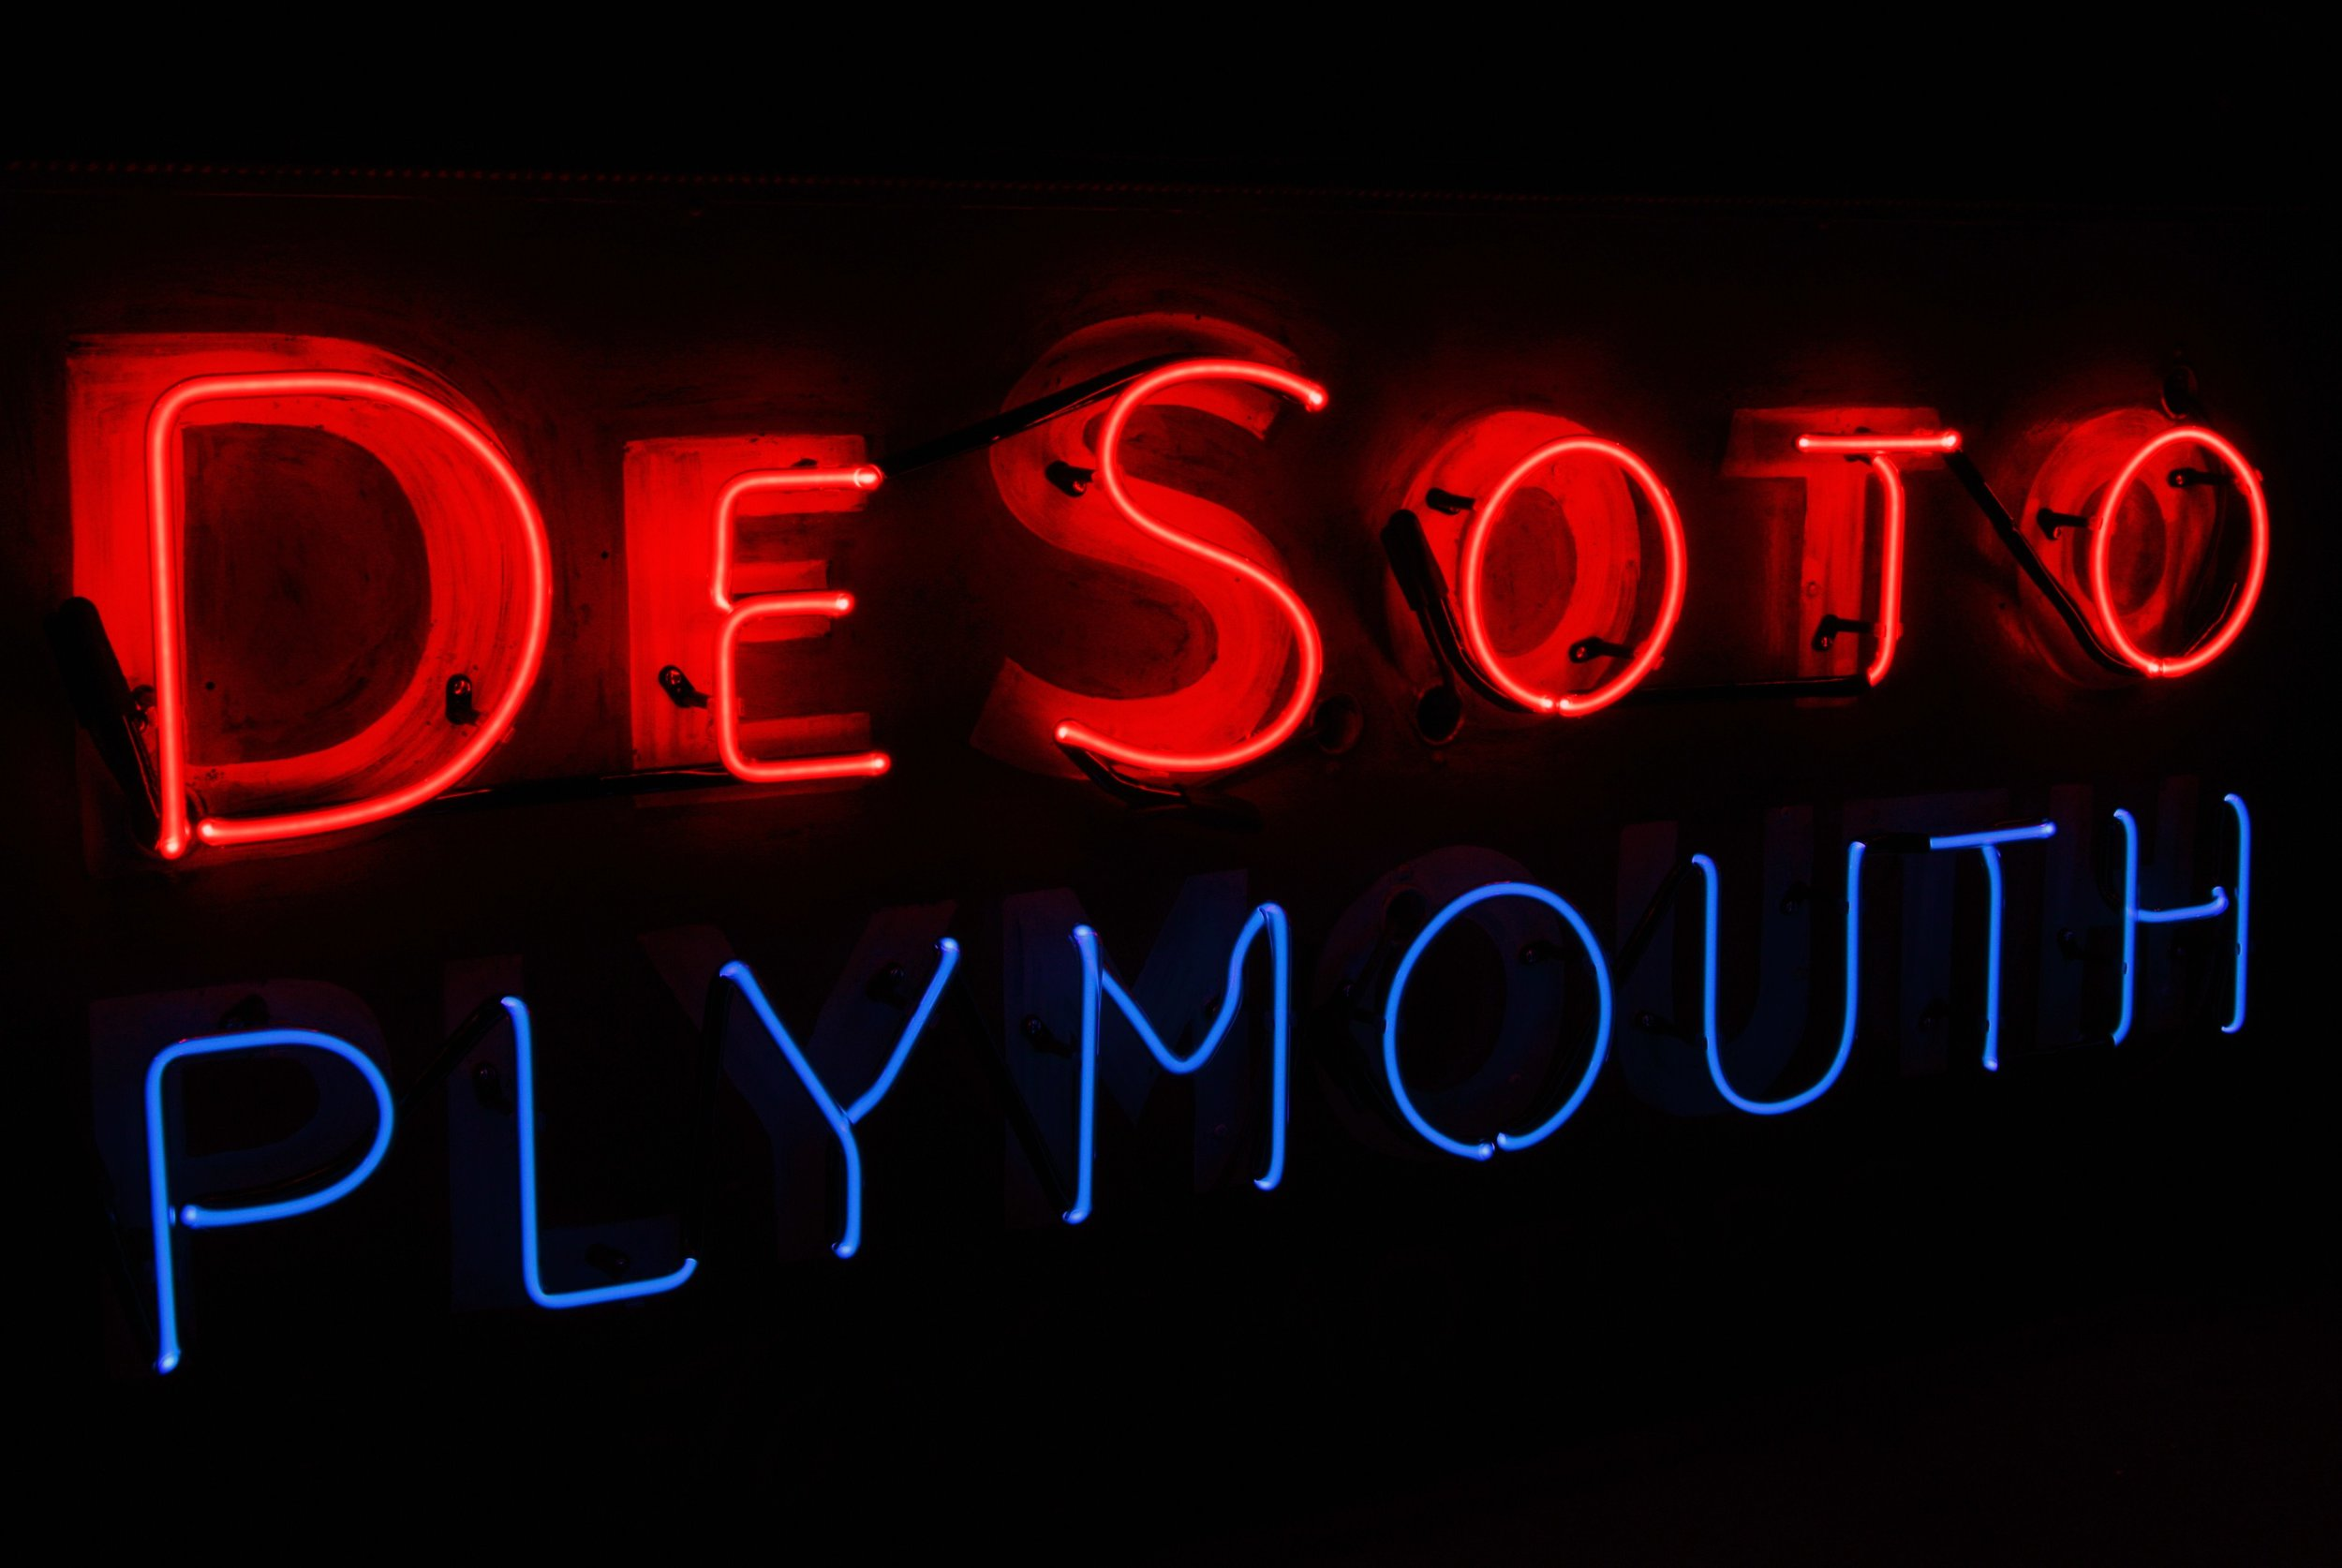 DeSoto Plymouth Neon Sign Restoration.jpg